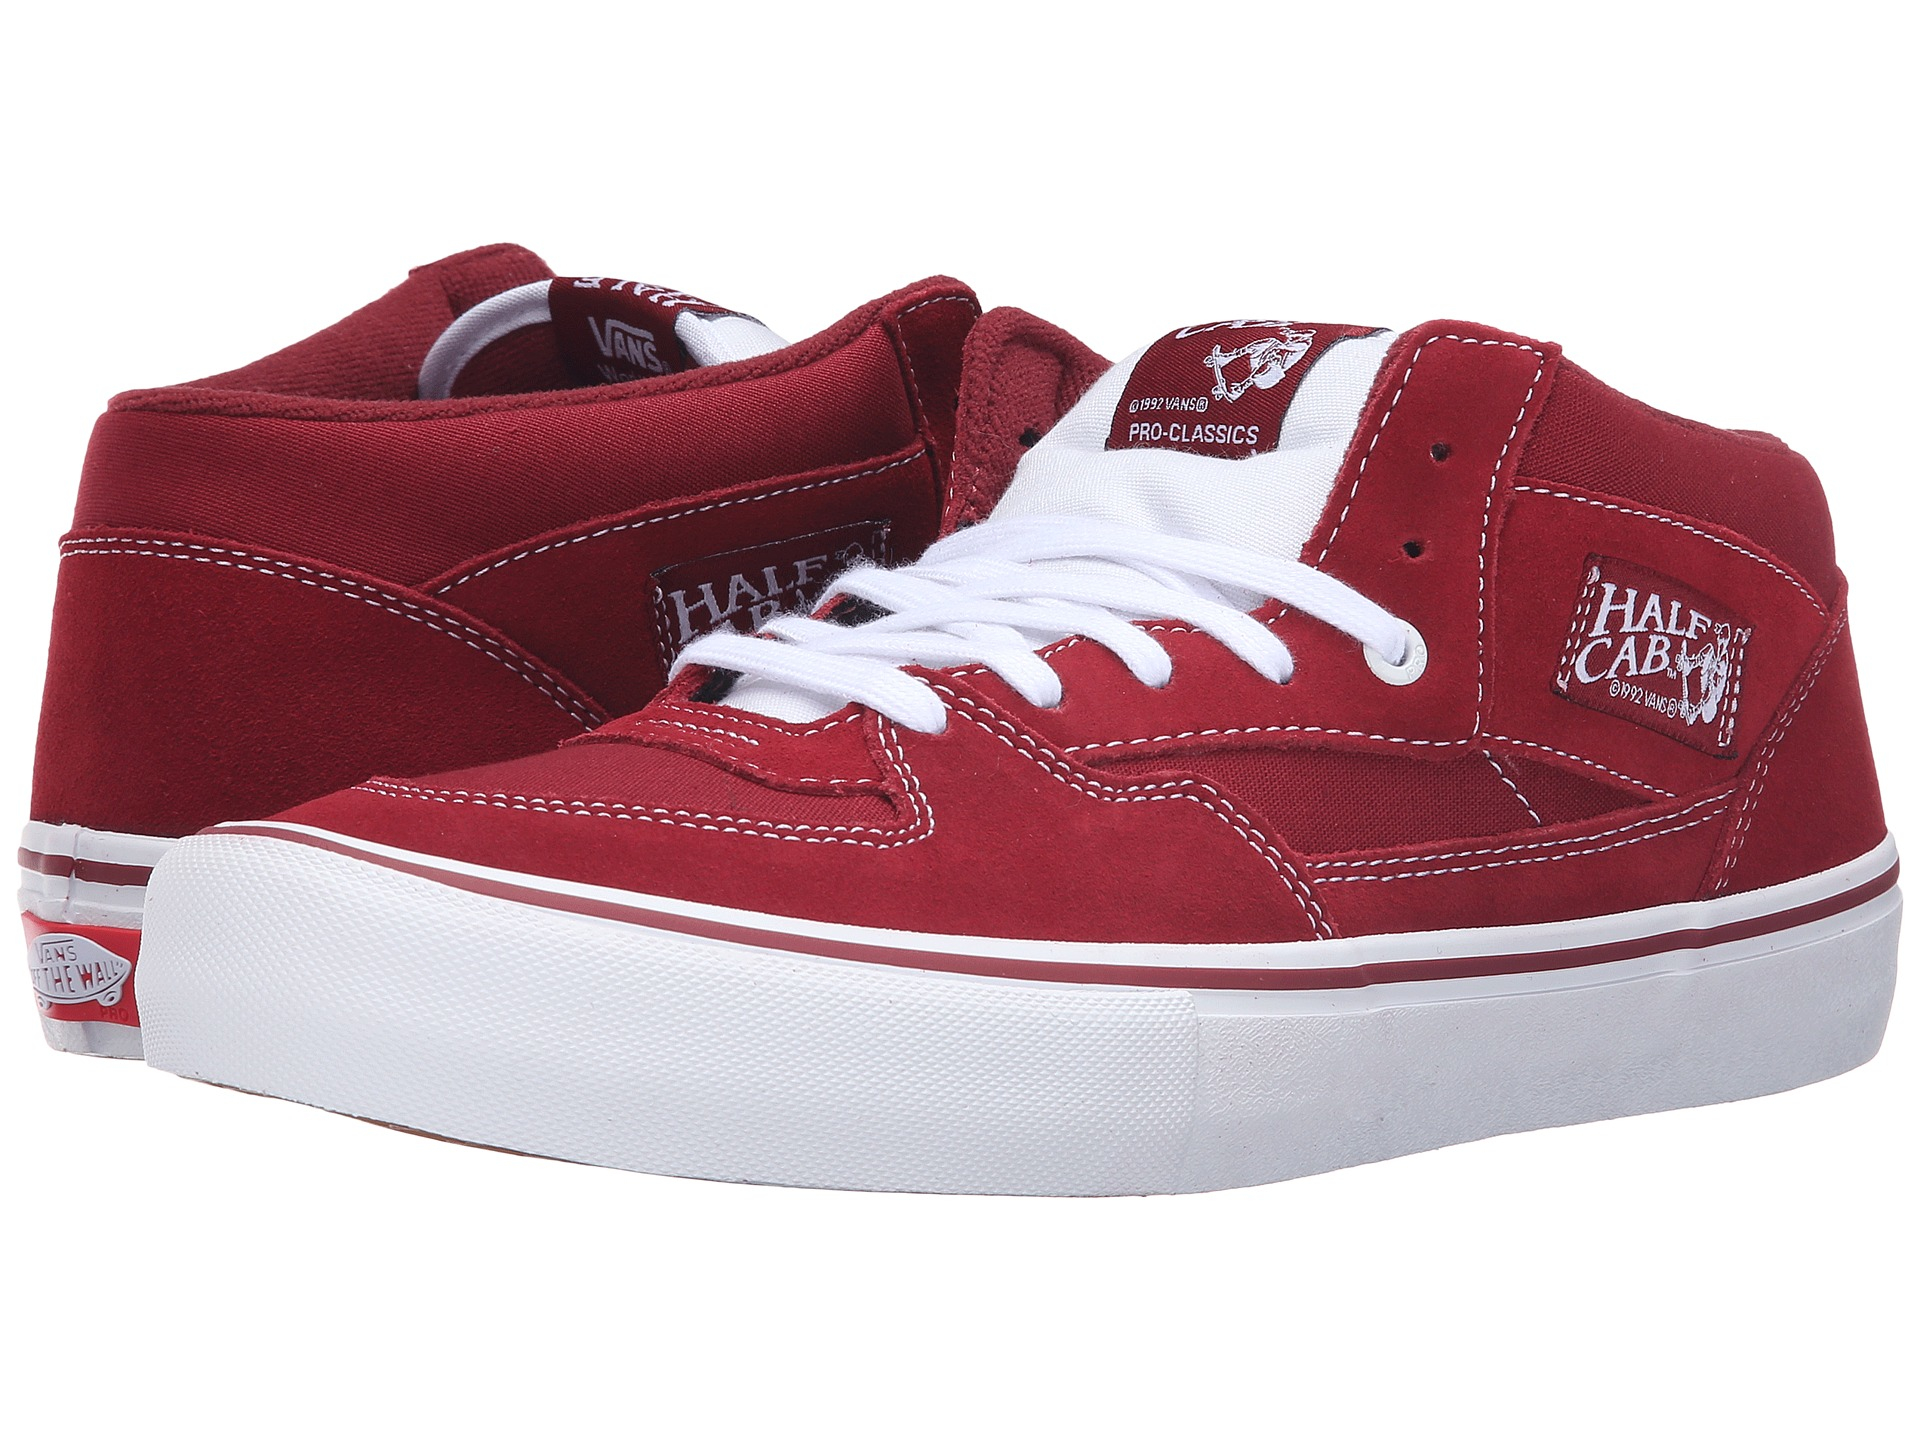 33063bd2f2 Lyst - Vans Half Cab® Pro in Red for Men